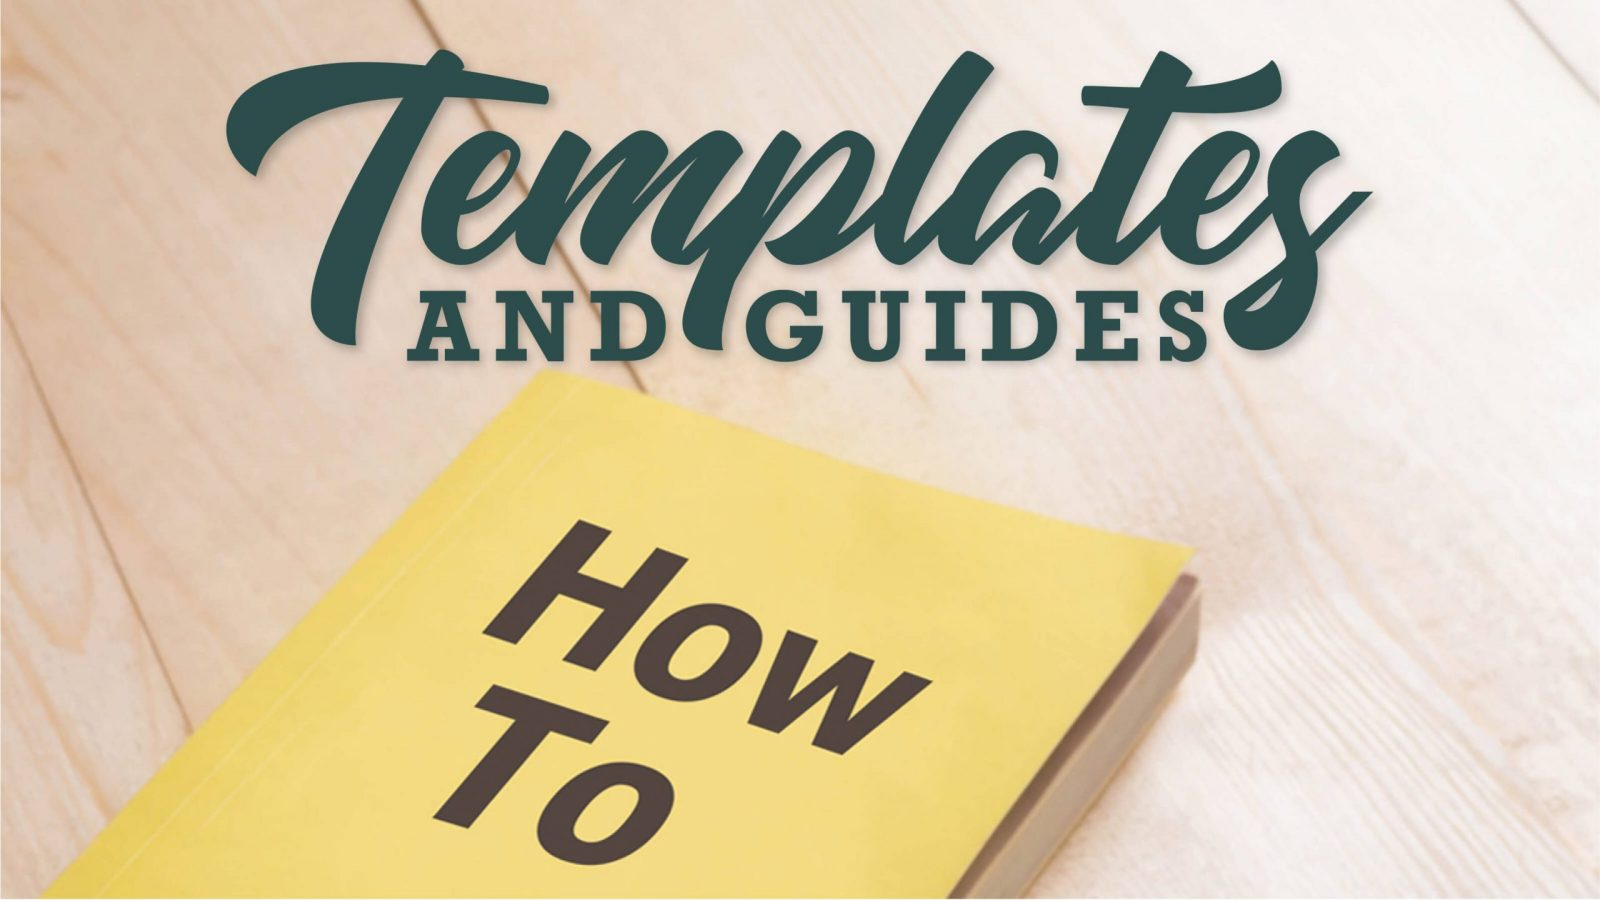 Challenge Coin Templates and Guides